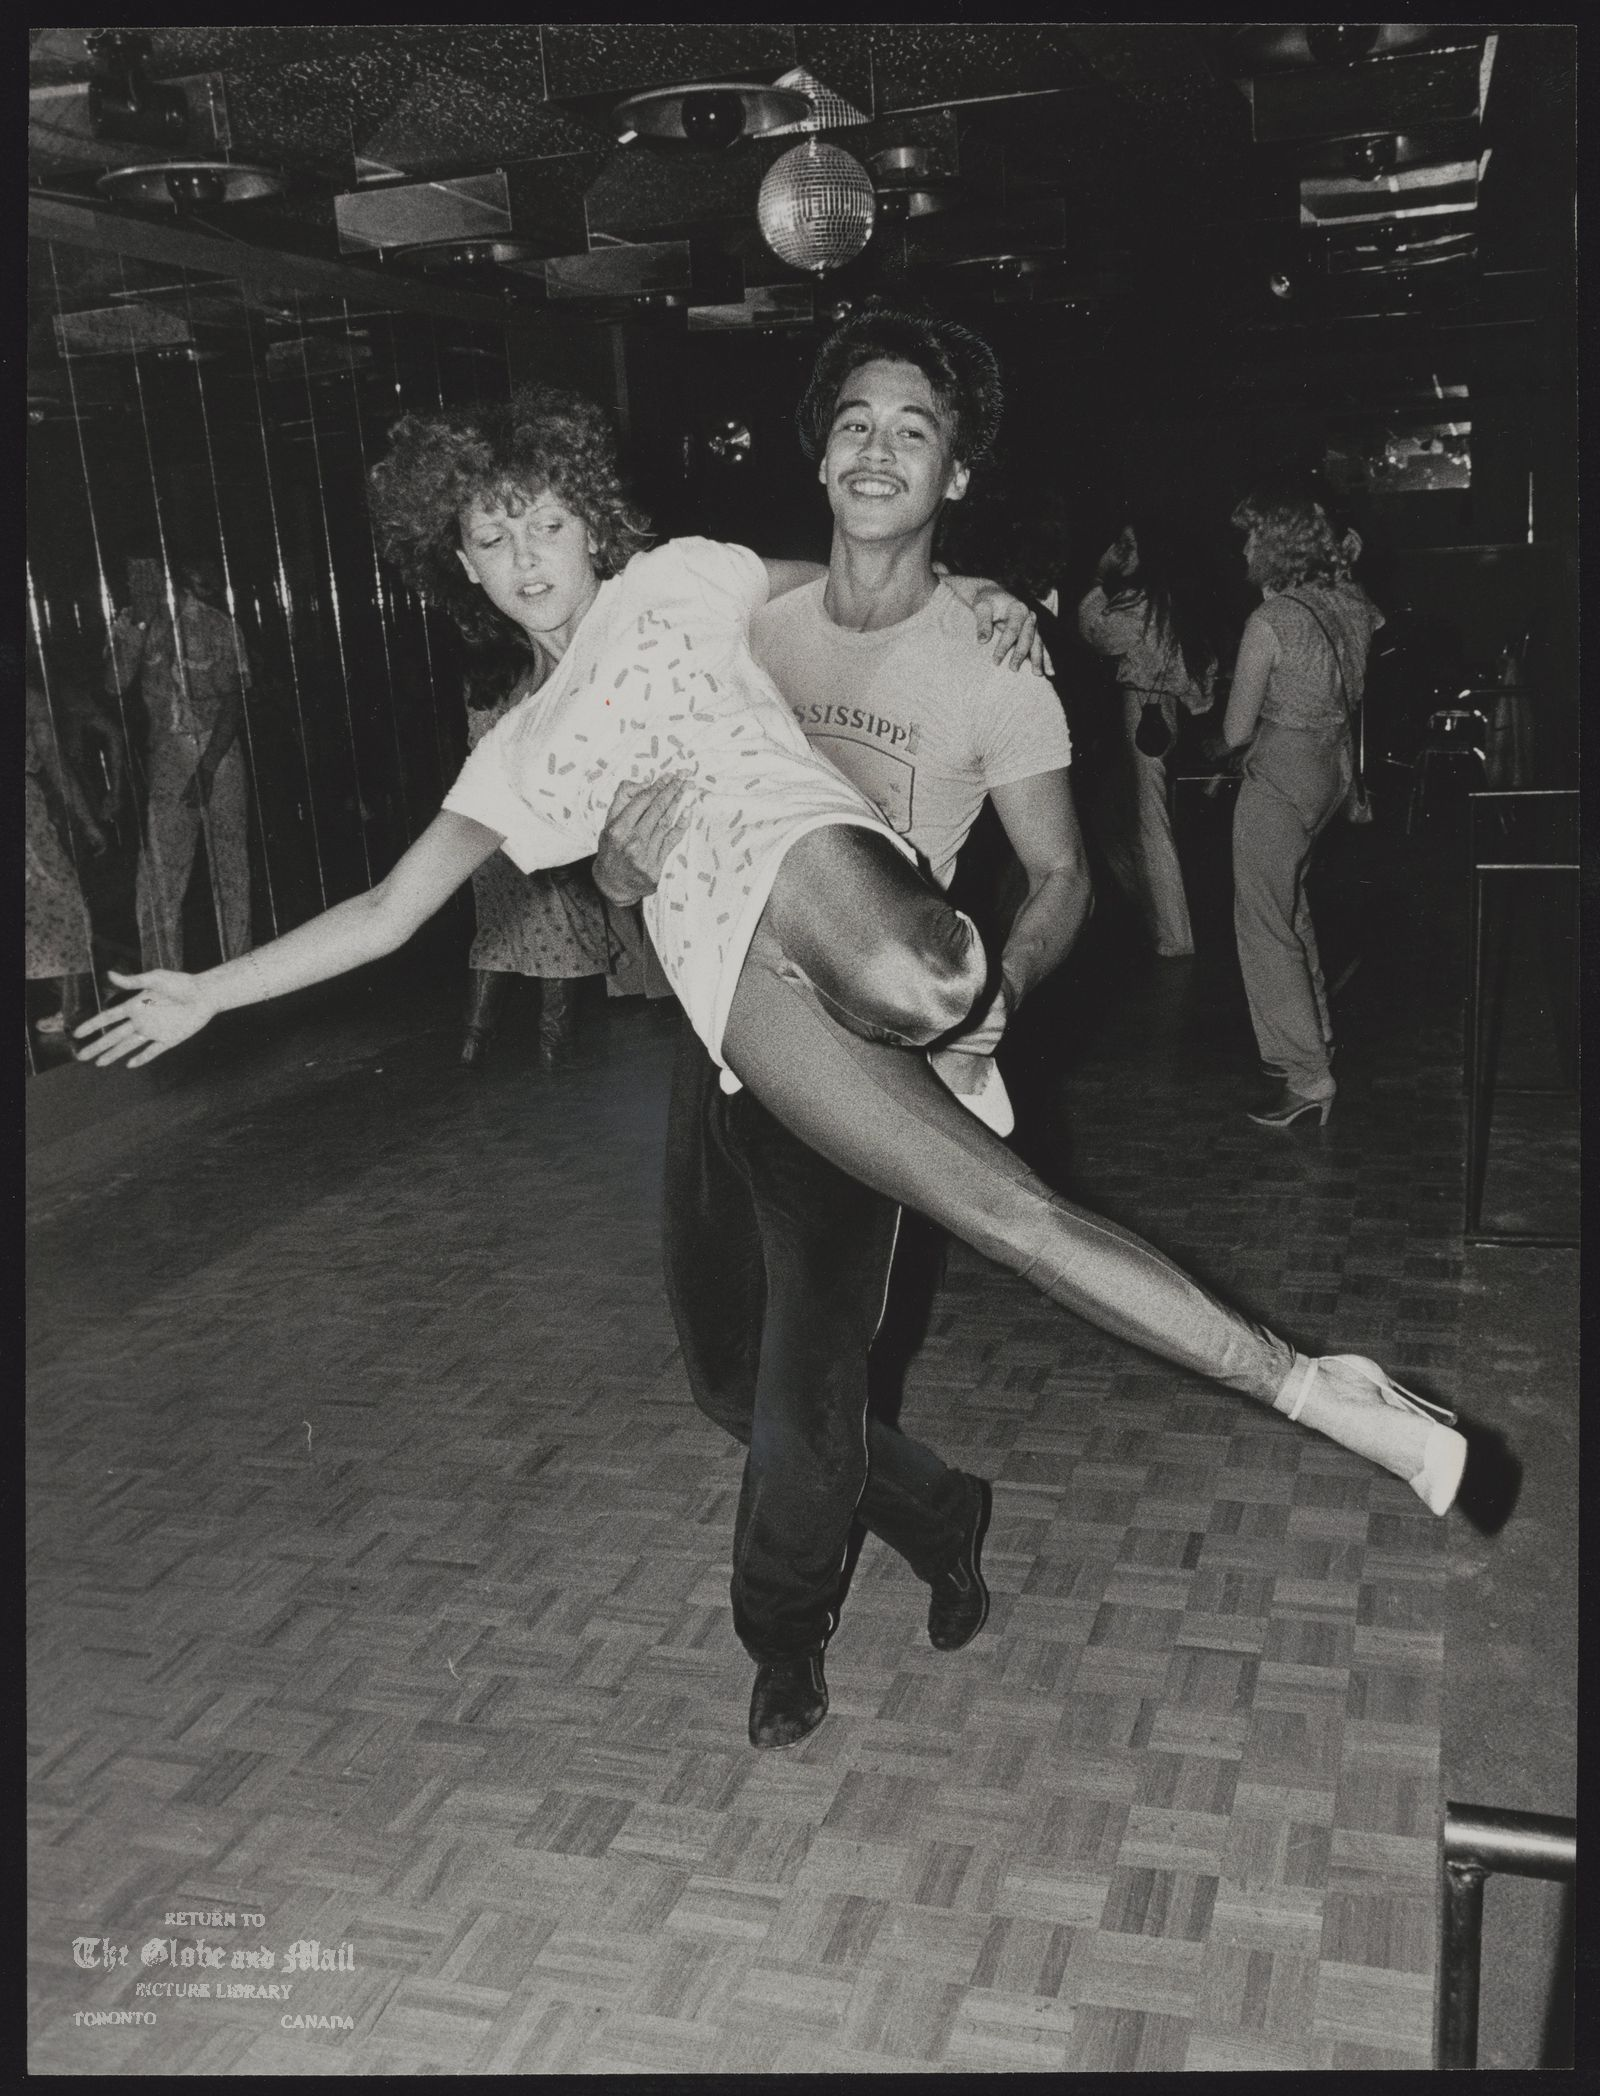 DANCING Jerry Olicia and Suzanne Taylor at Ona's disco.